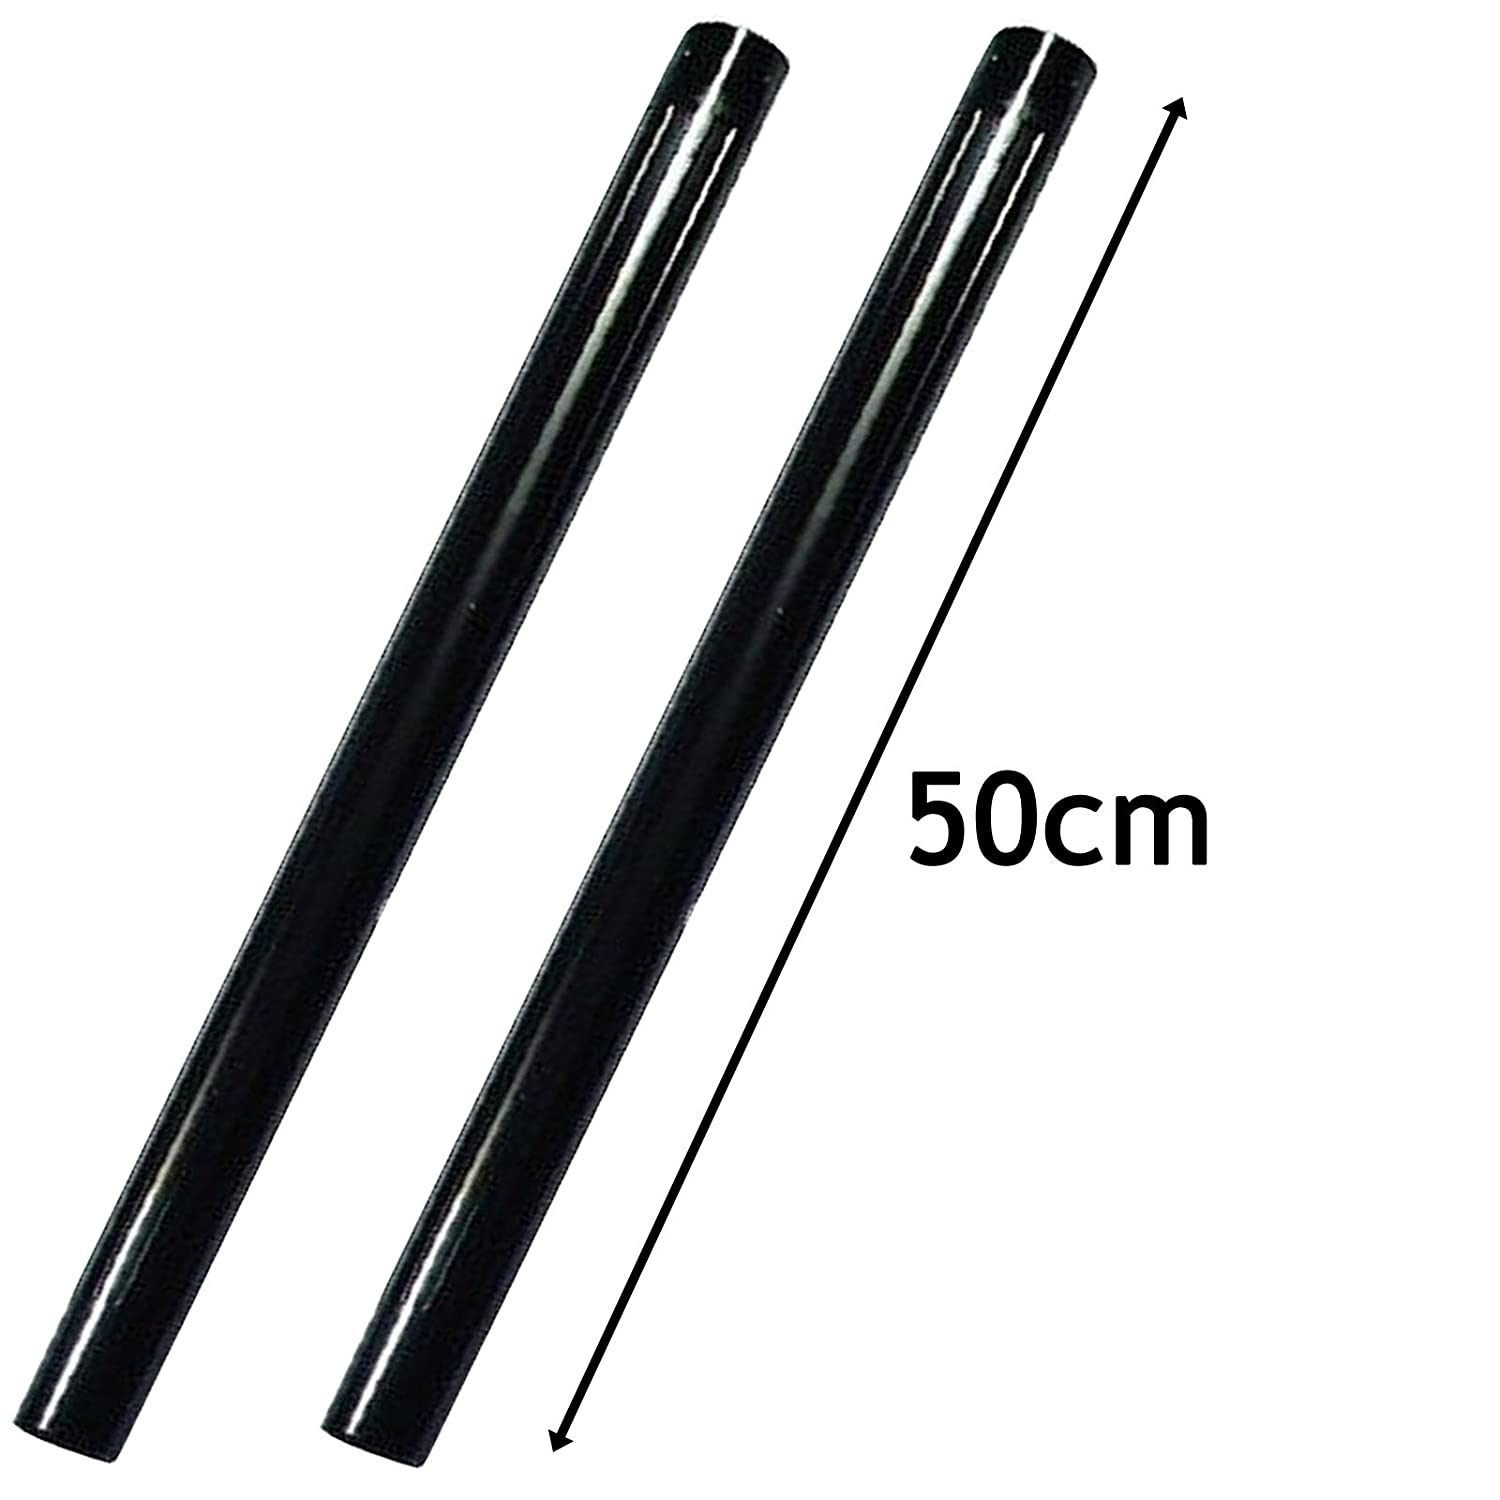 SPARES2GO Extension Rods//Attachment Hoover Tubes Tool Kit for Einhell Vacuum Cleaner 32mm Nozzle Diameter